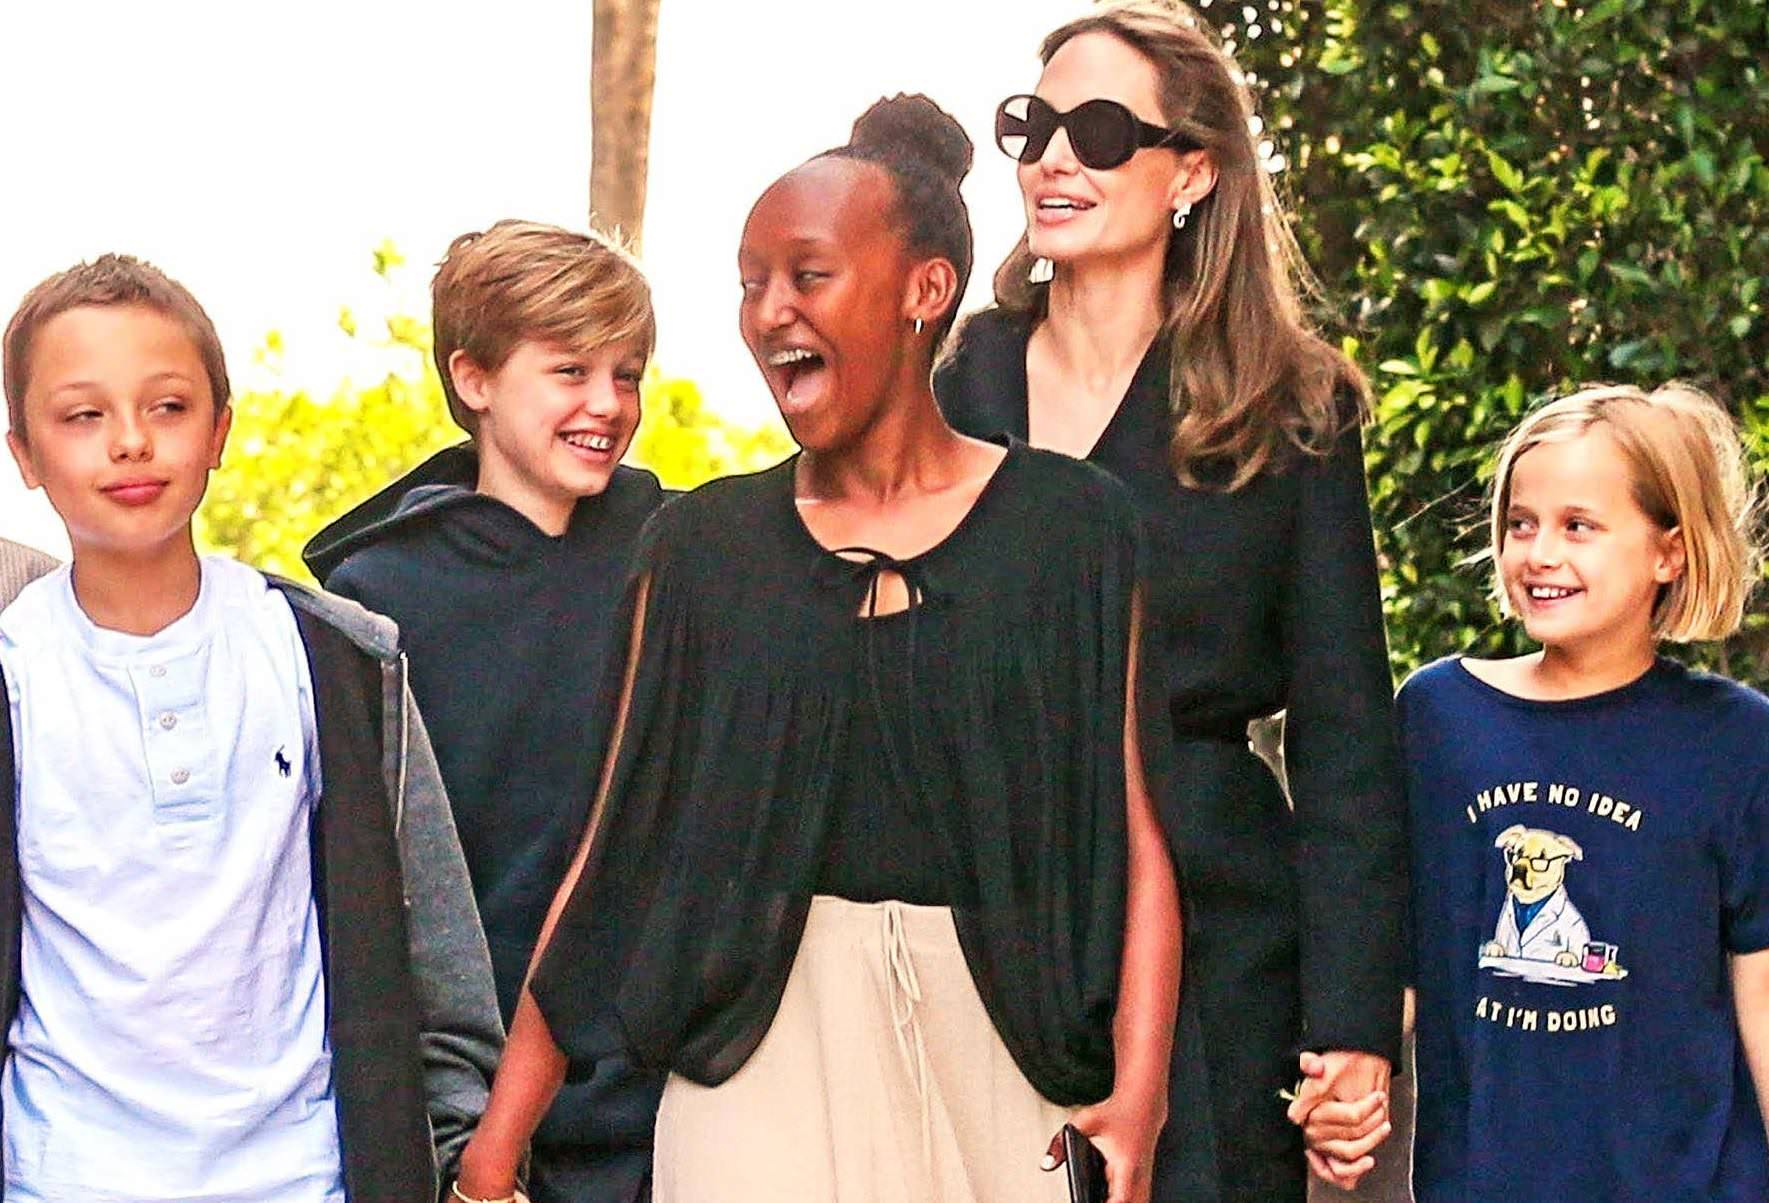 Angelina's Evil Plan - 'She's Turned The Kids Against Brad'